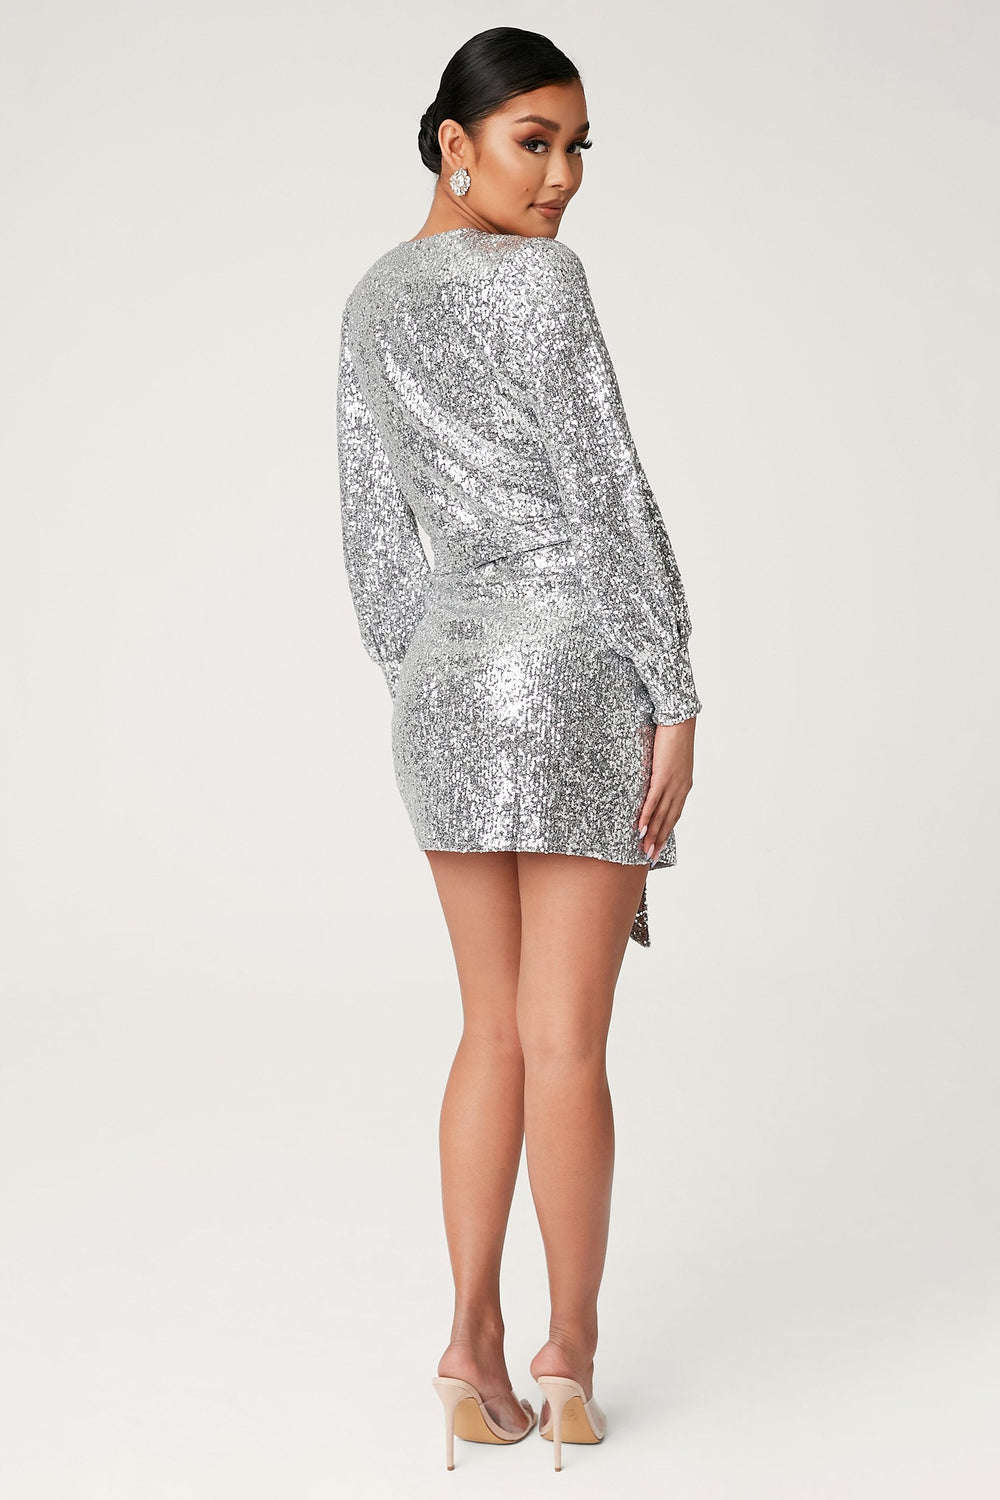 Chrissa Sequin Long Sleeve Wrap Mini Dress - Silver - MESHKI ?id=13858101821515